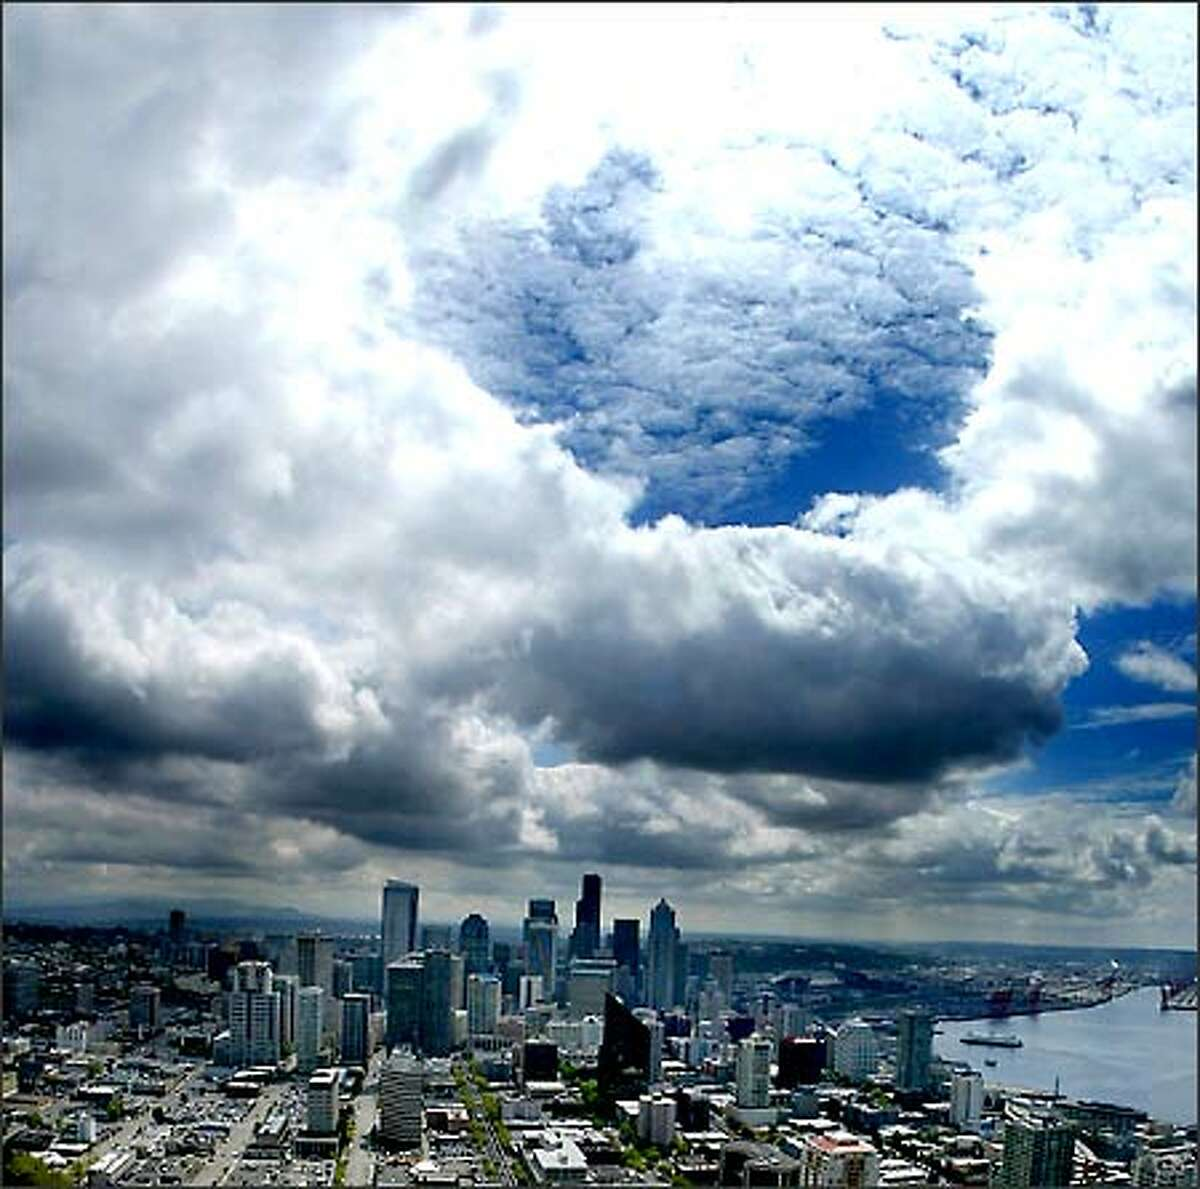 Storm clouds clear for a moment as they pass over the Seattle skyline, allowing the sun to create a brief but dazzling display as viewed from the top of the Space Needle at the Seattle Center.